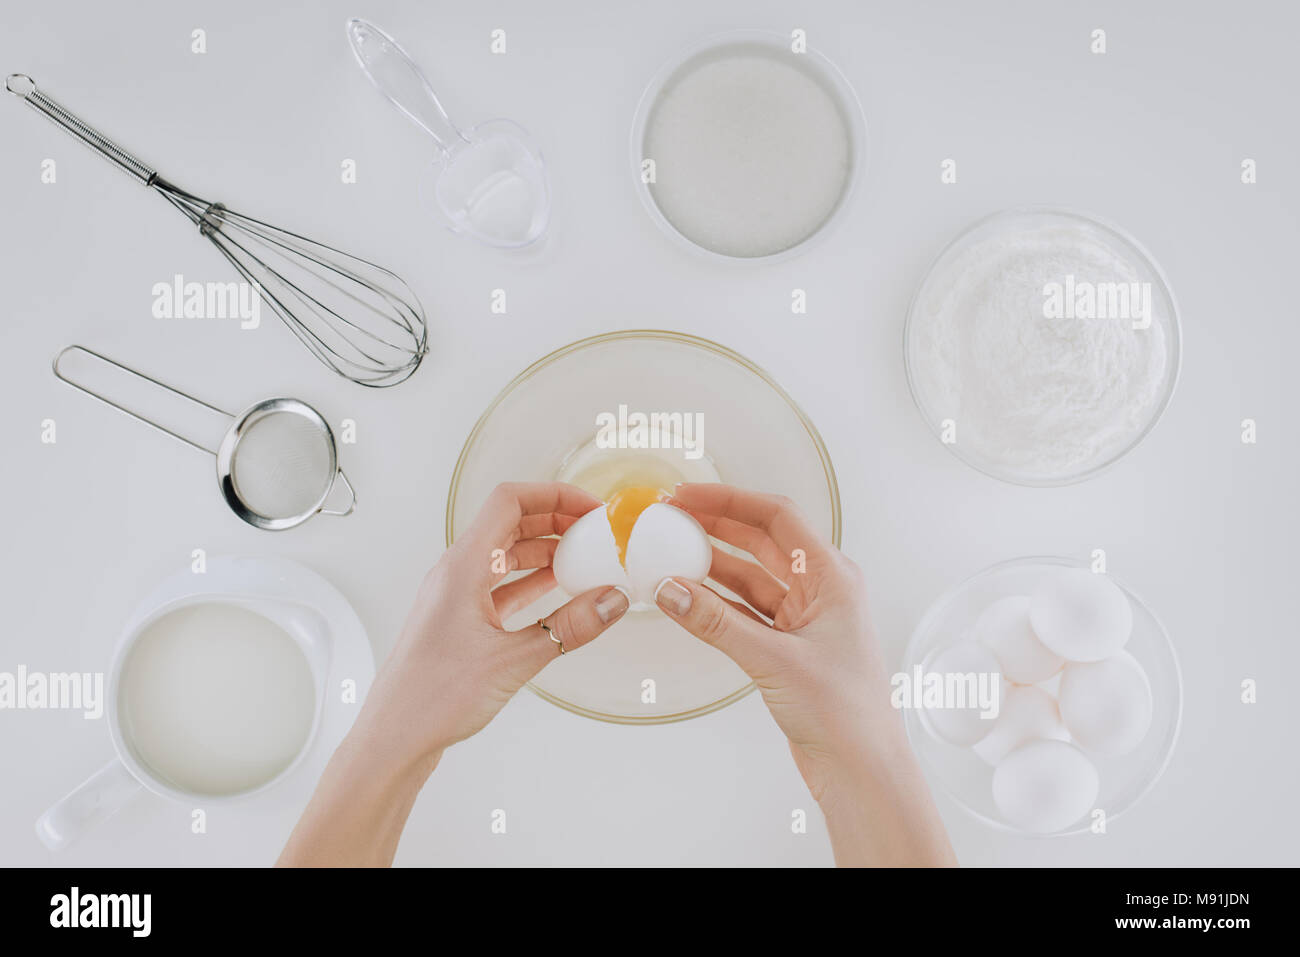 cropped shot of person holding egg while cooking pancakes isolated on grey - Stock Image